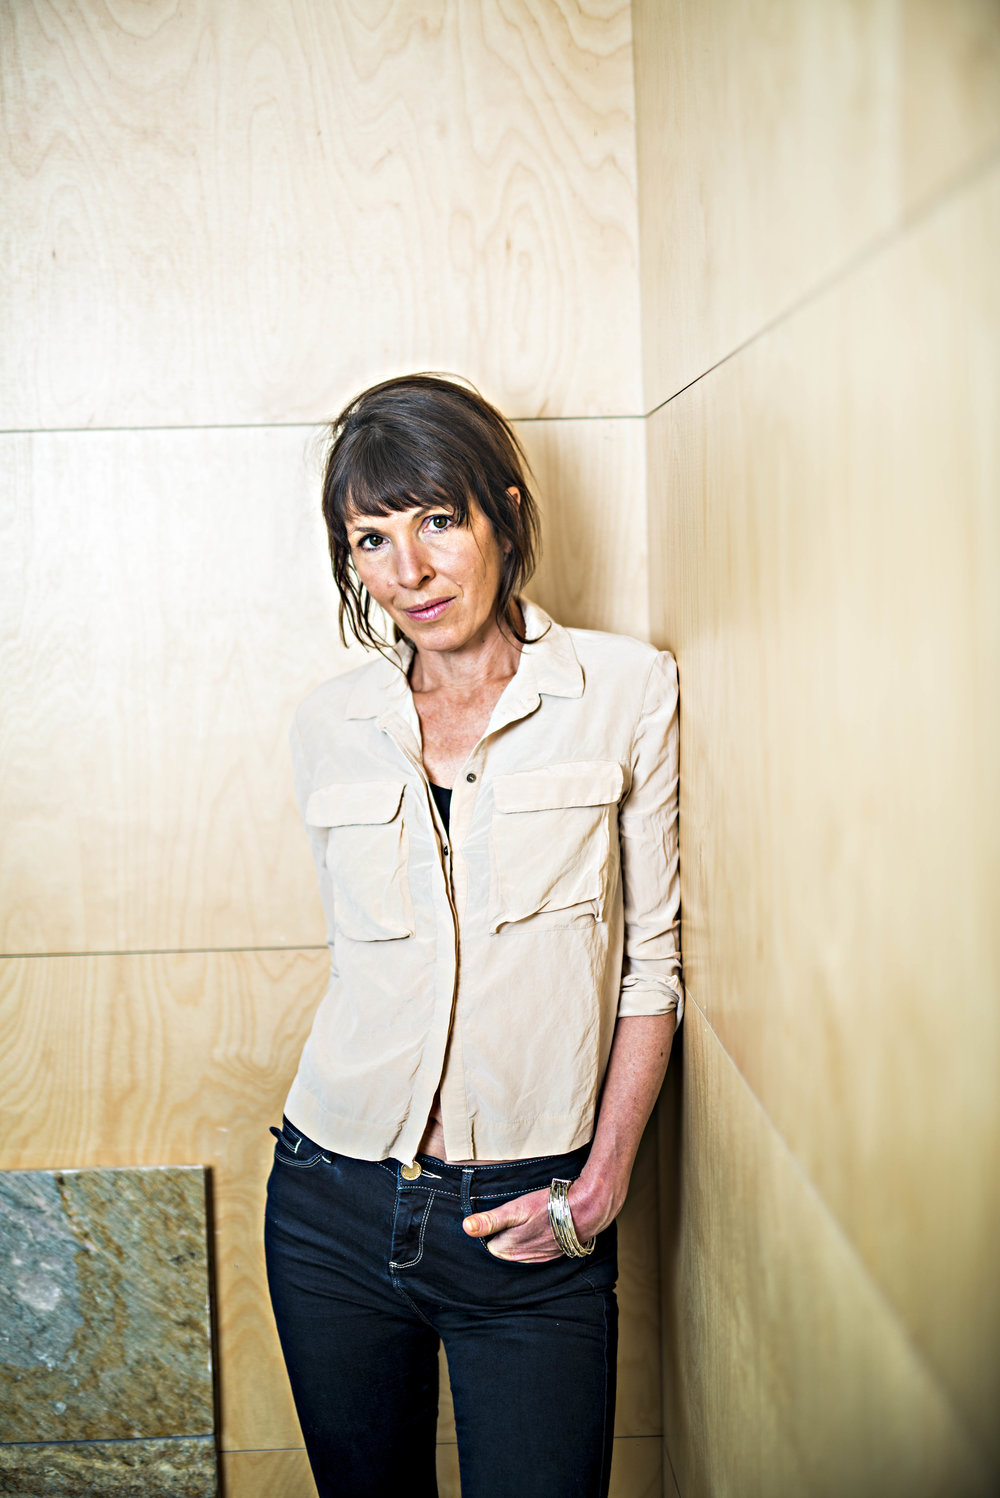 Business Portraiture - Rachel Cusk